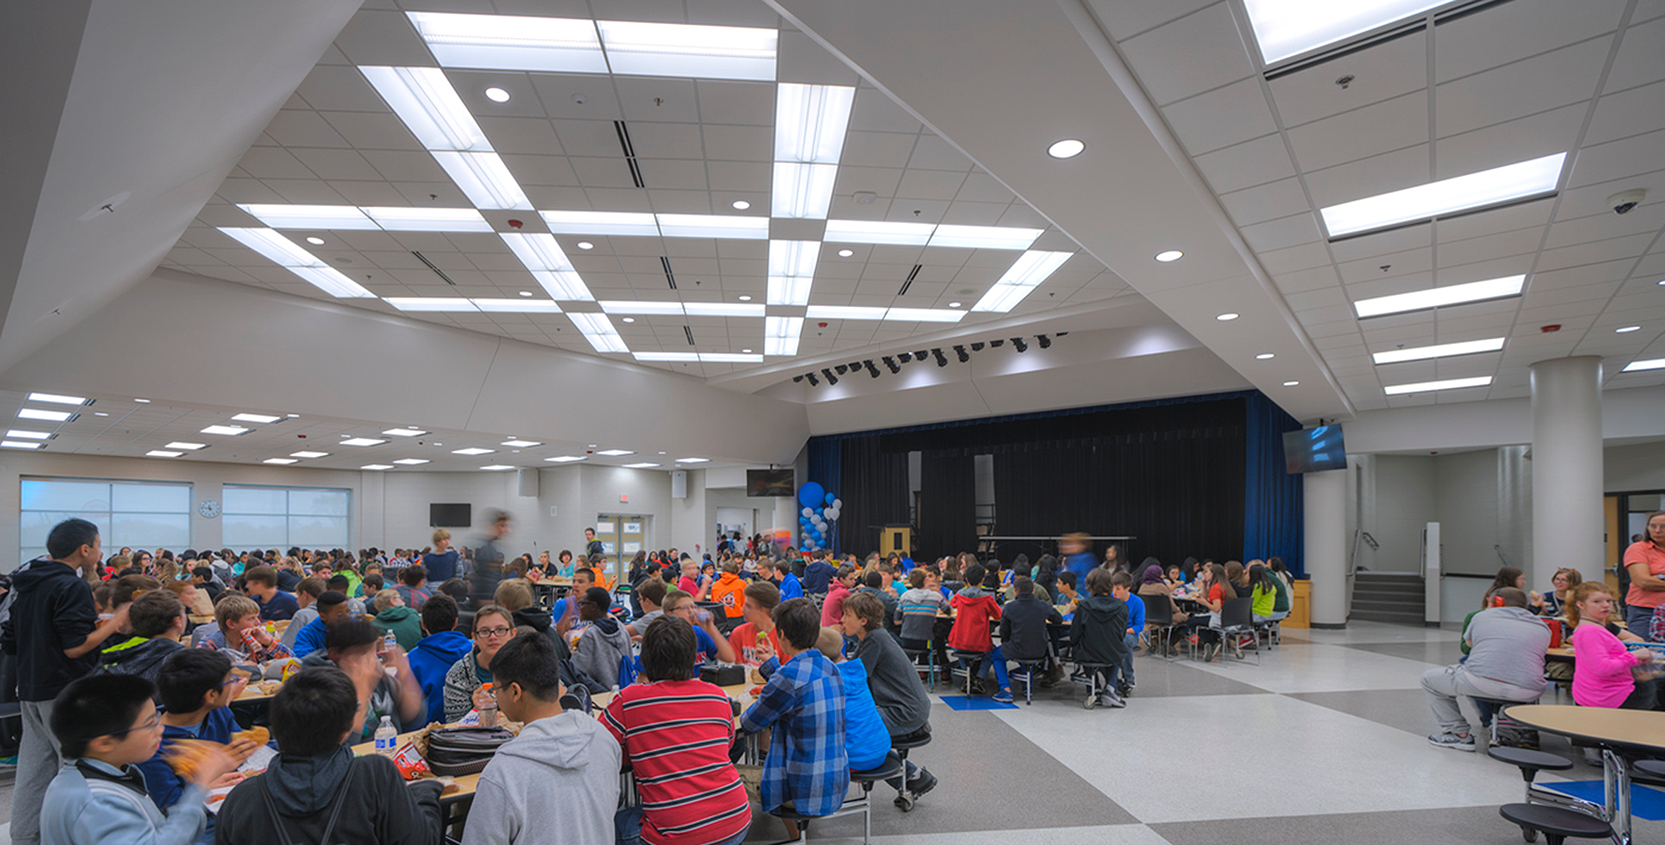 PCCS-Liberty-Middle-School-Cafeteria-2_1665x845